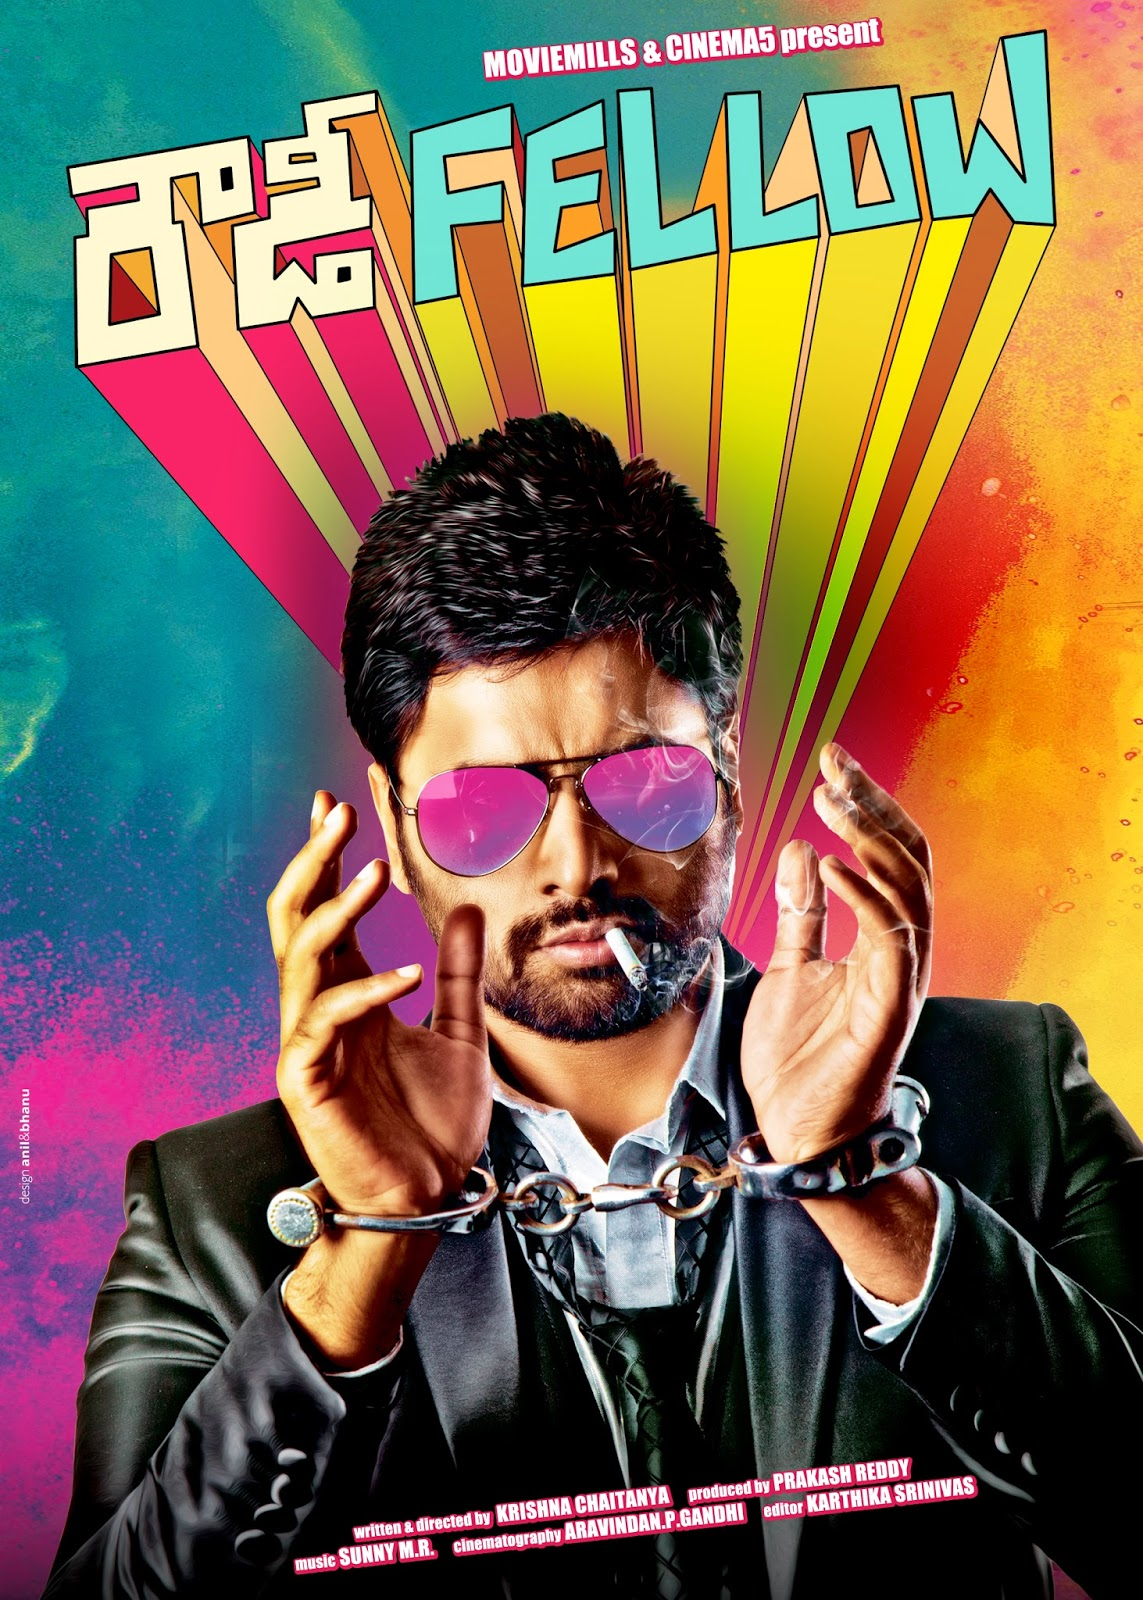 ROWDY FELLOW MOVIE ONLINE POSTER